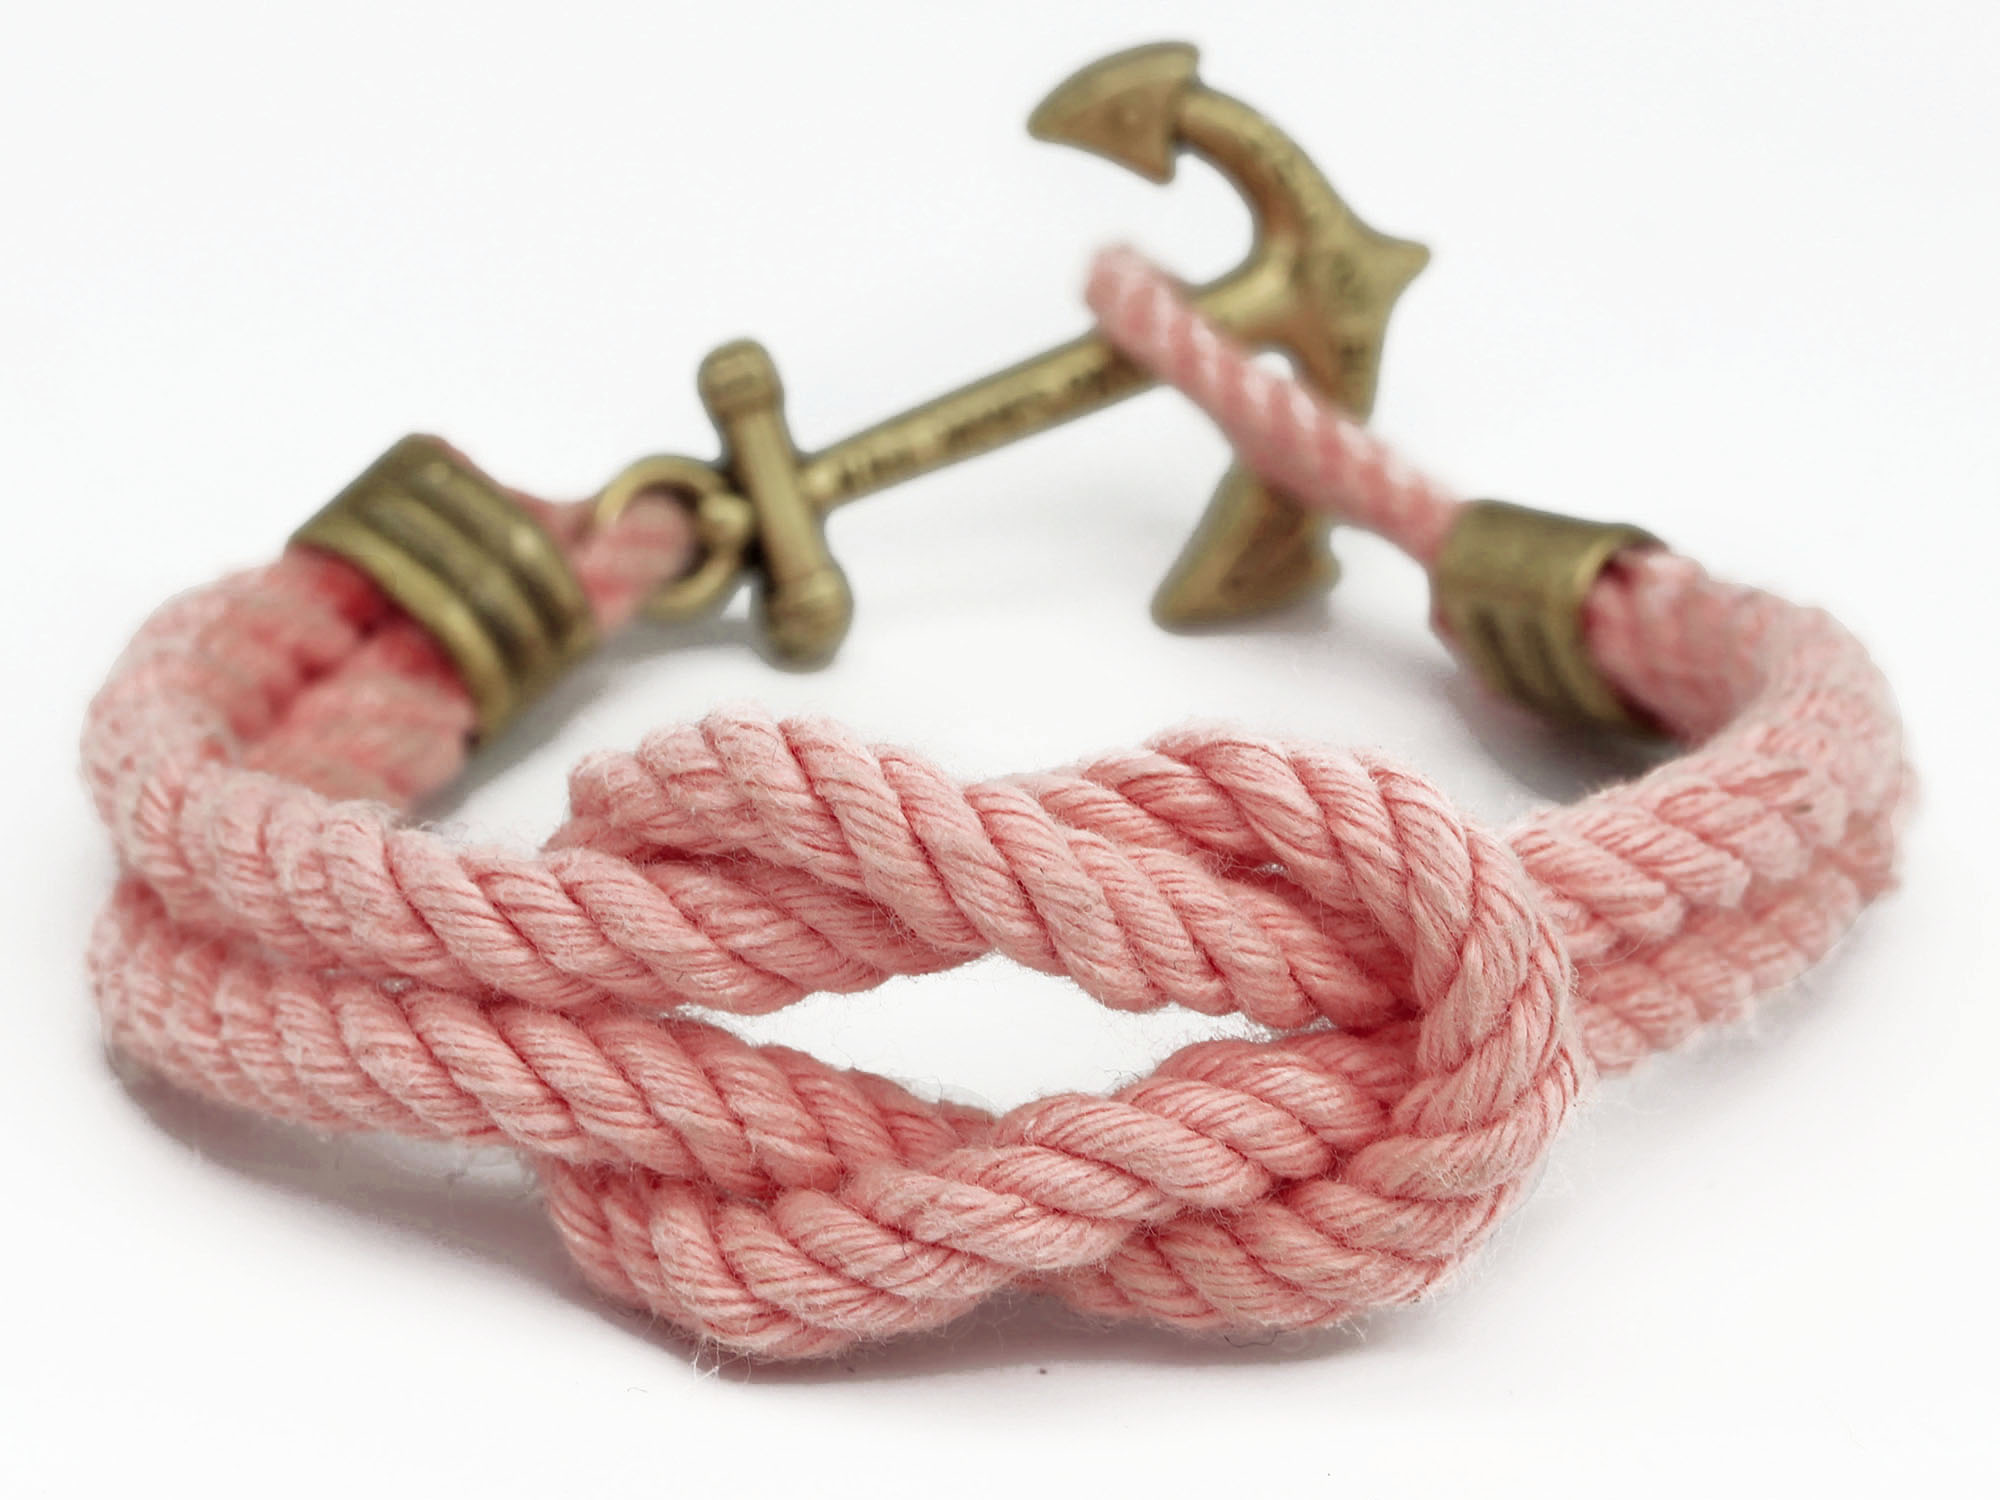 Anchor Bracelet - Asterly's Dock Pink Sunset - by Kiel James Patrick